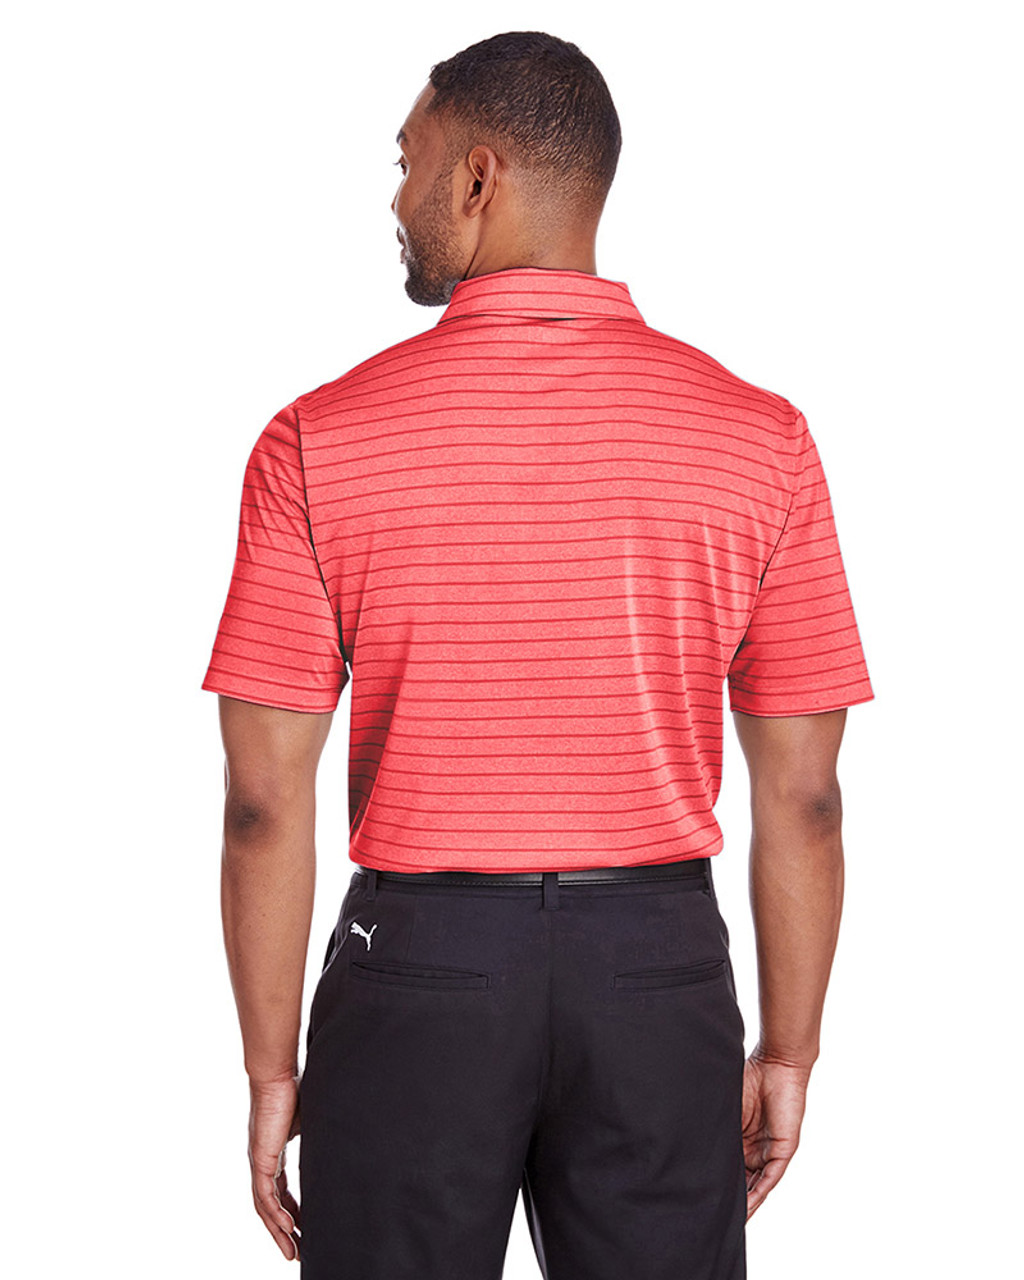 High Risk Red - back, 597223 Puma Golf Men's Rotation Stripe Polo | Blankclothing.ca